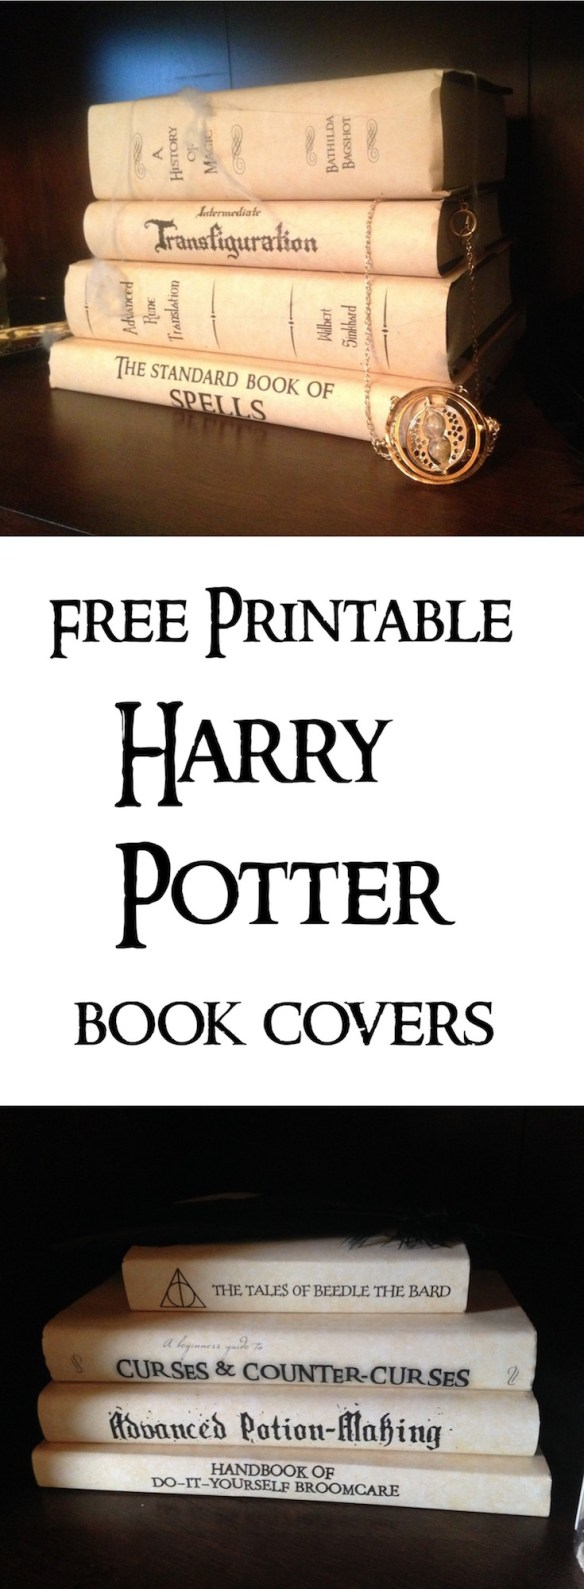 Harry Potter Book Cover Diy : Harry potter book covers free printables paper trail design